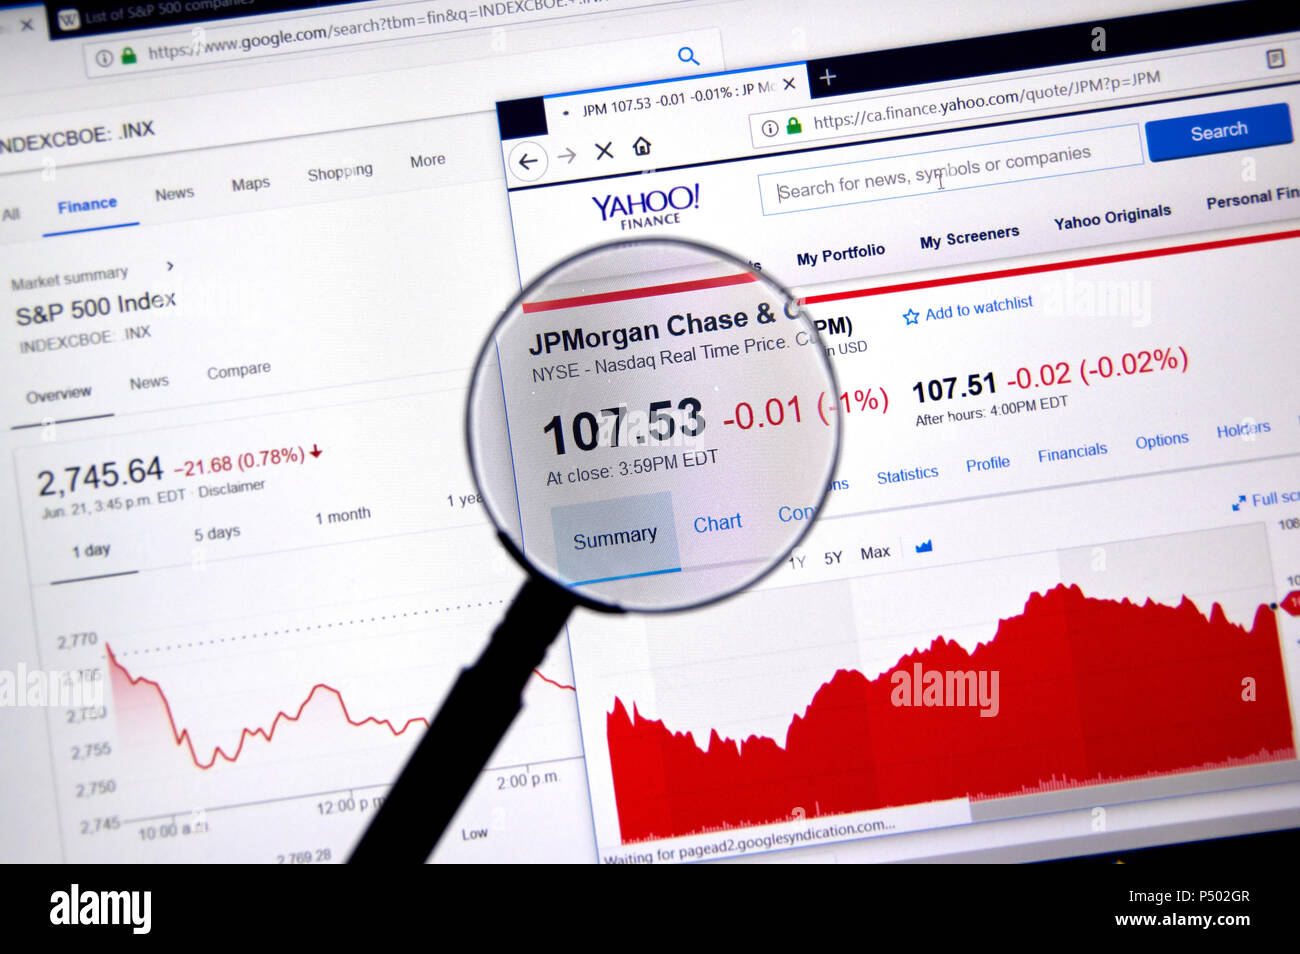 MONTREAL, CANADA - JUNE 22, 2018: JPMorgand Chase ticker with shares price and charts under magnifying glass on Yahoo Finance. - Stock Image